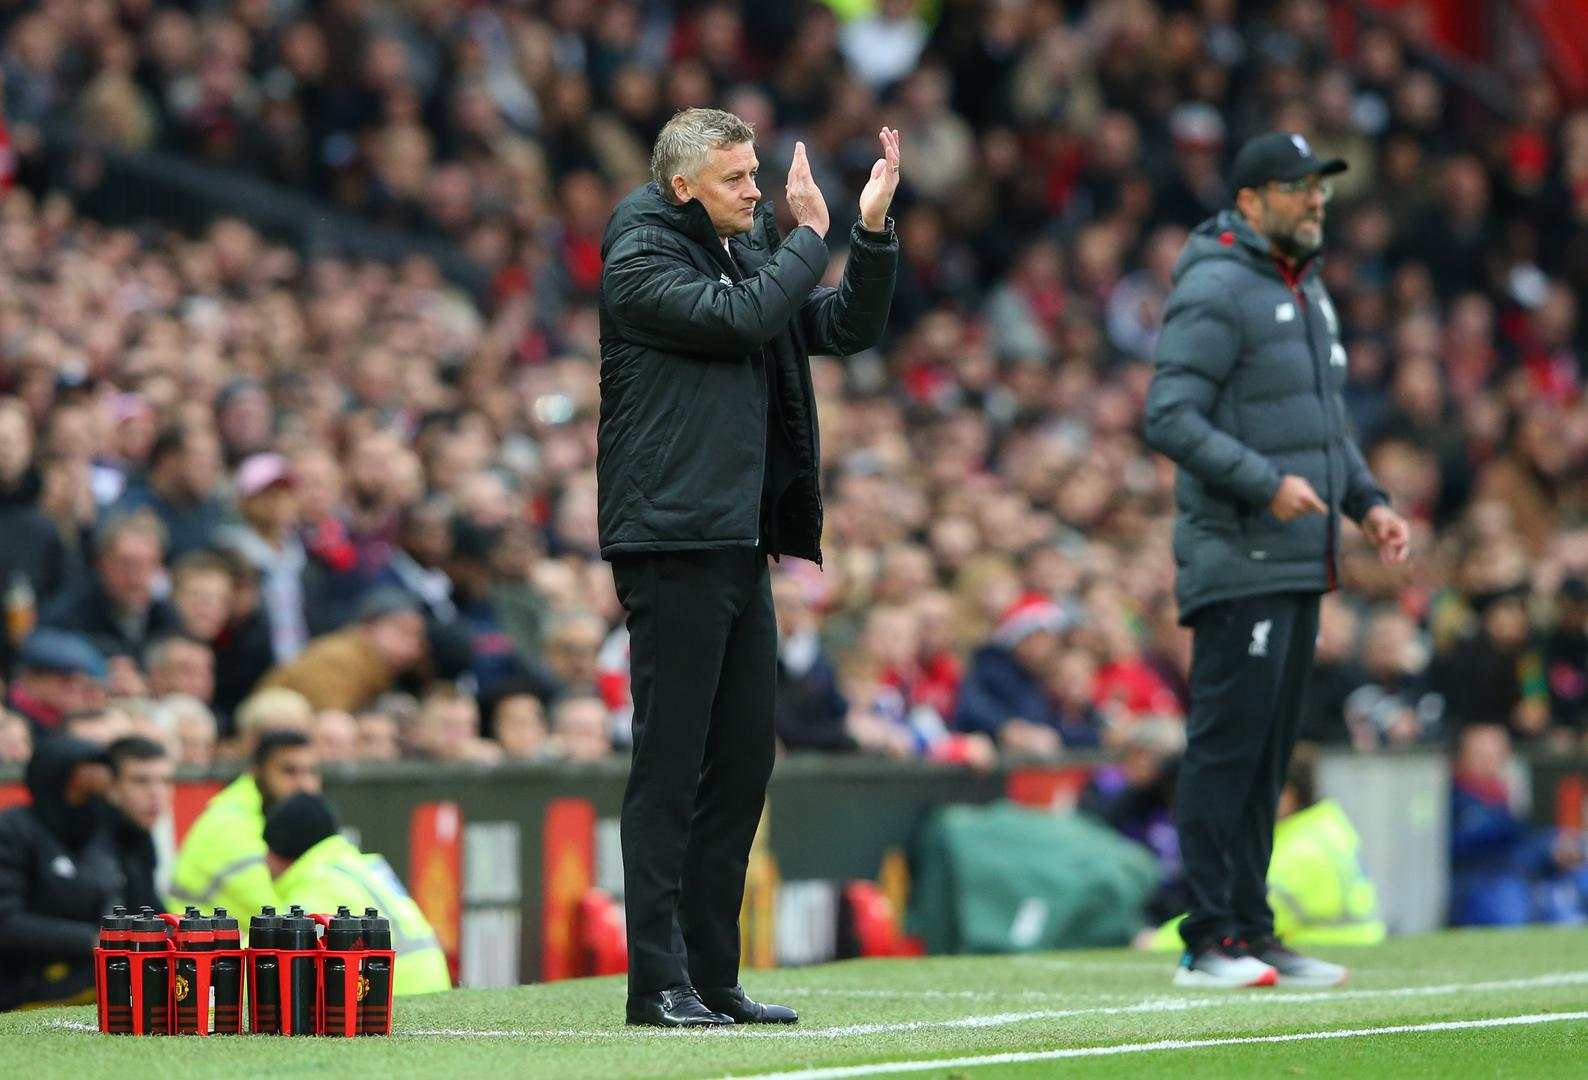 Ole Gunnar Solskjaer claps as Jurgen Klopp stands in the background